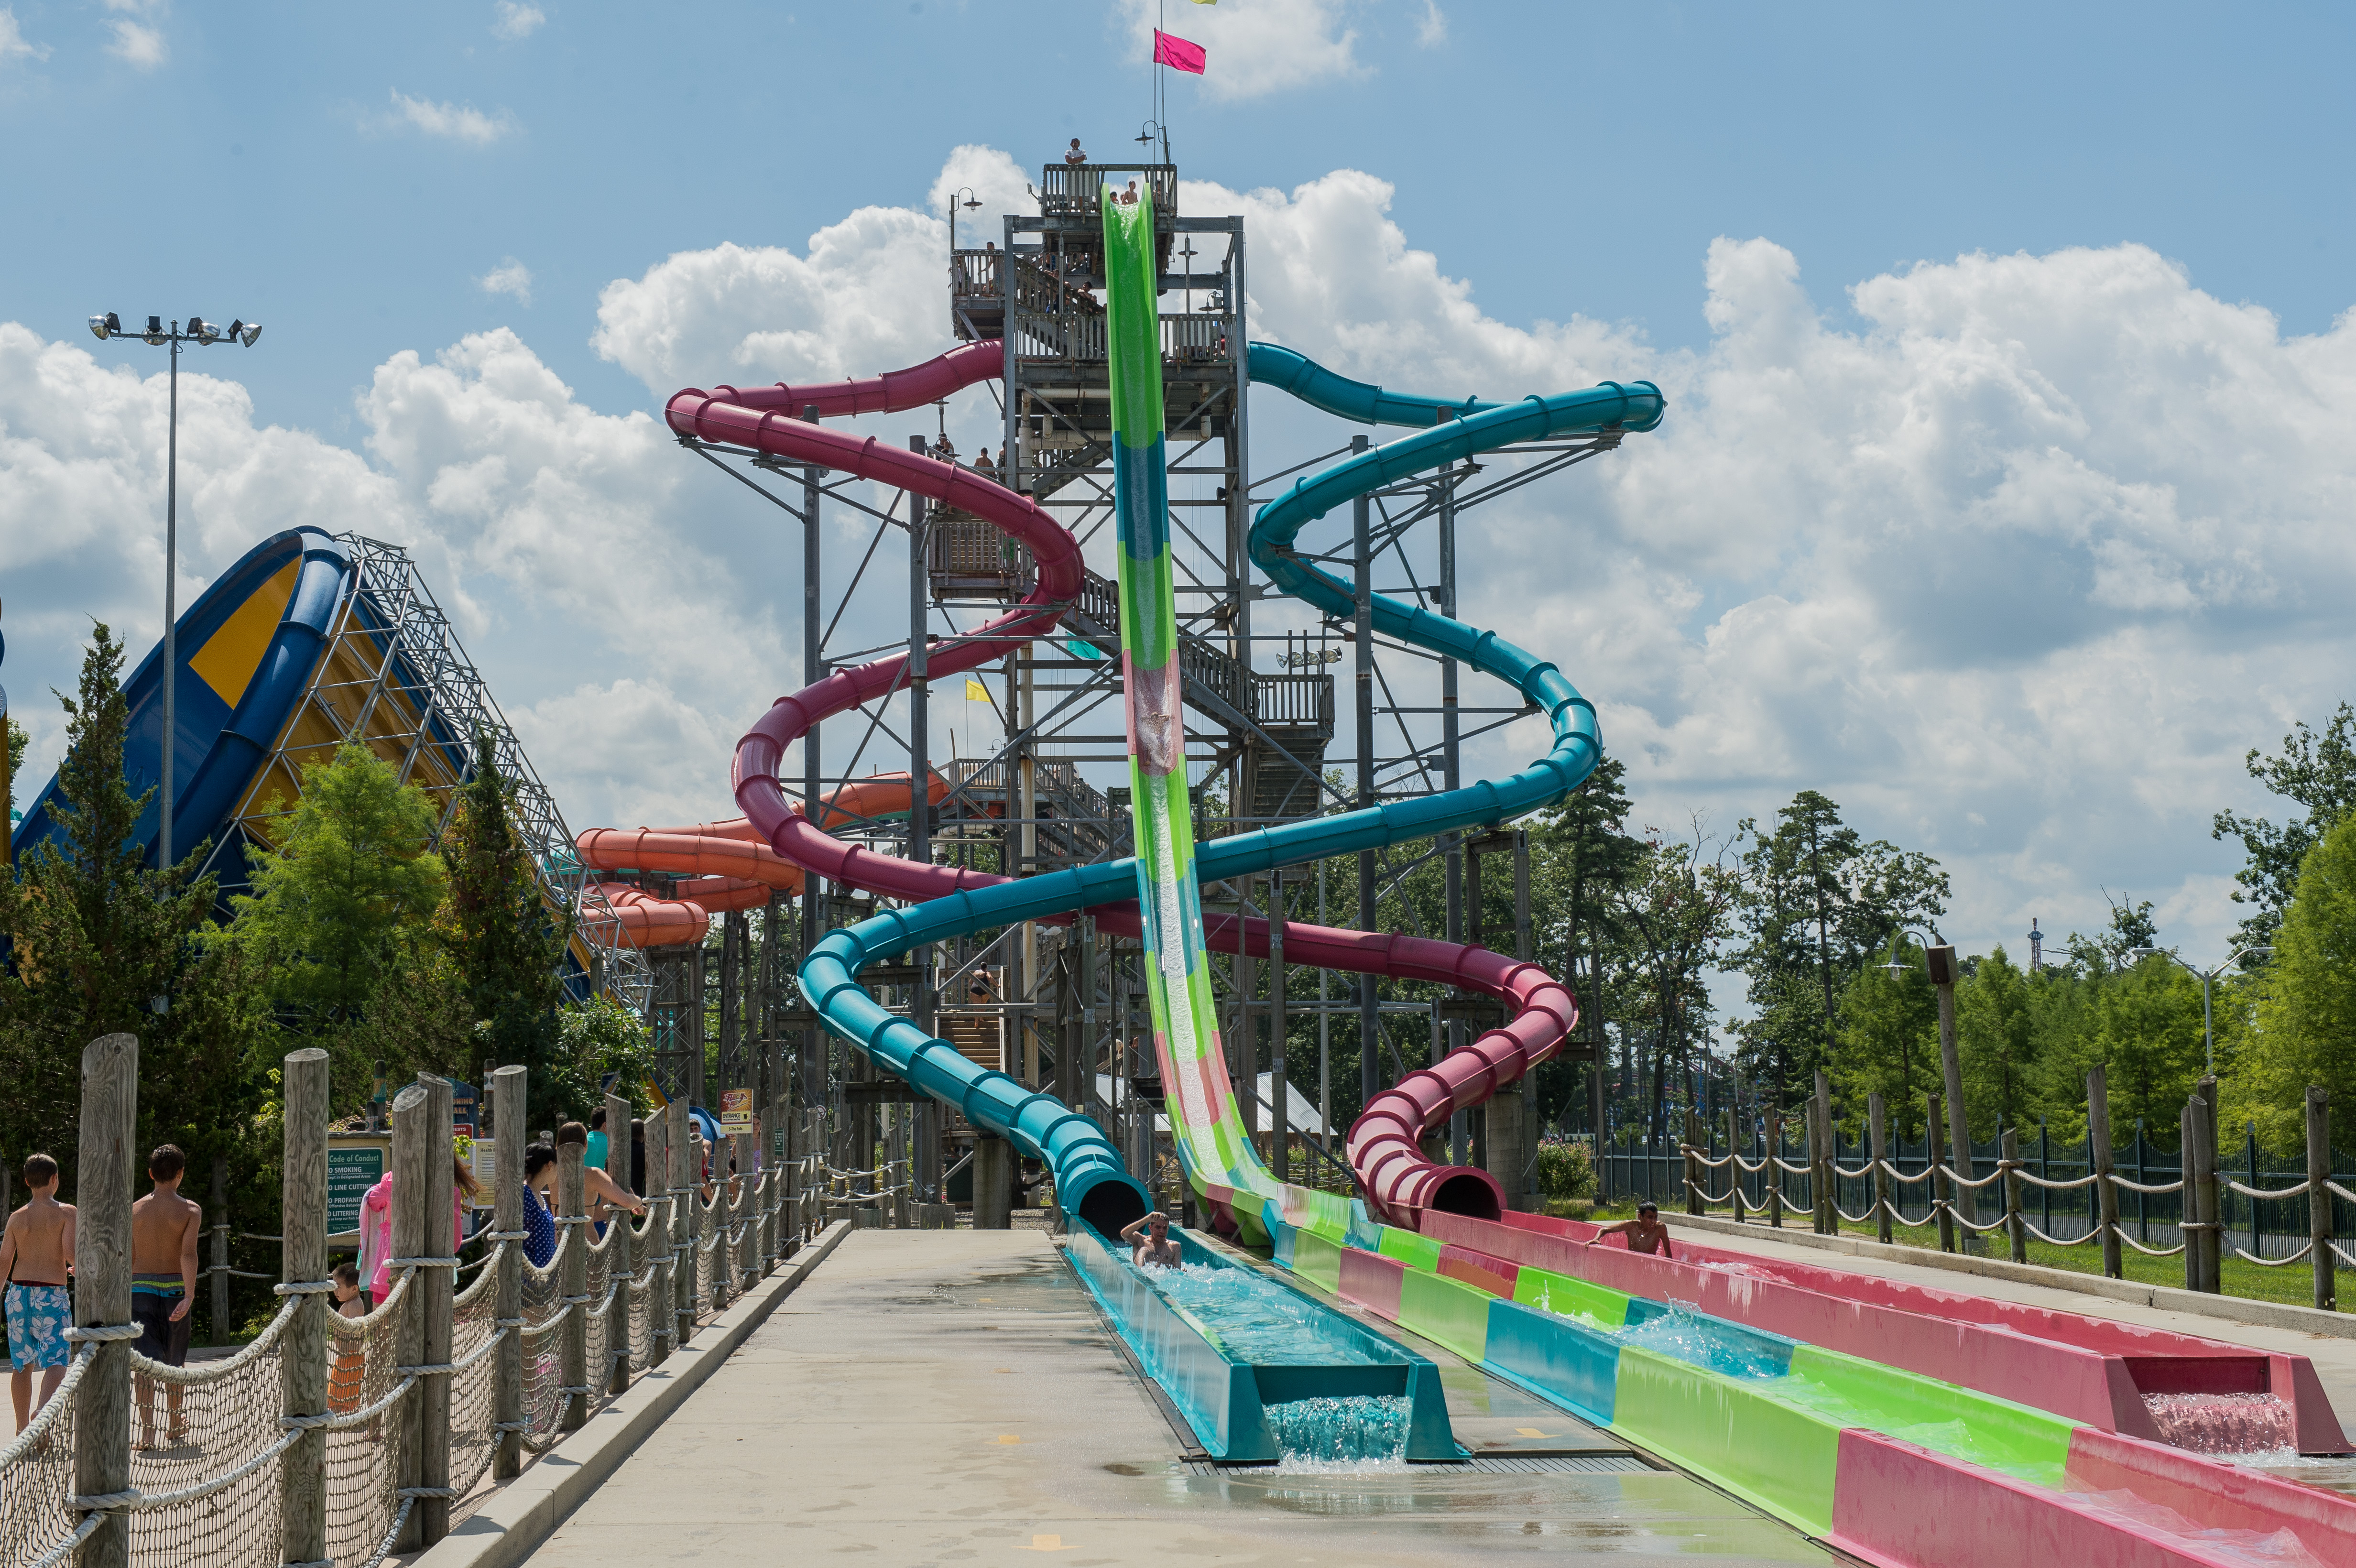 16 Things You Didn't Know about Hurricane Harbor - Jersey Kids